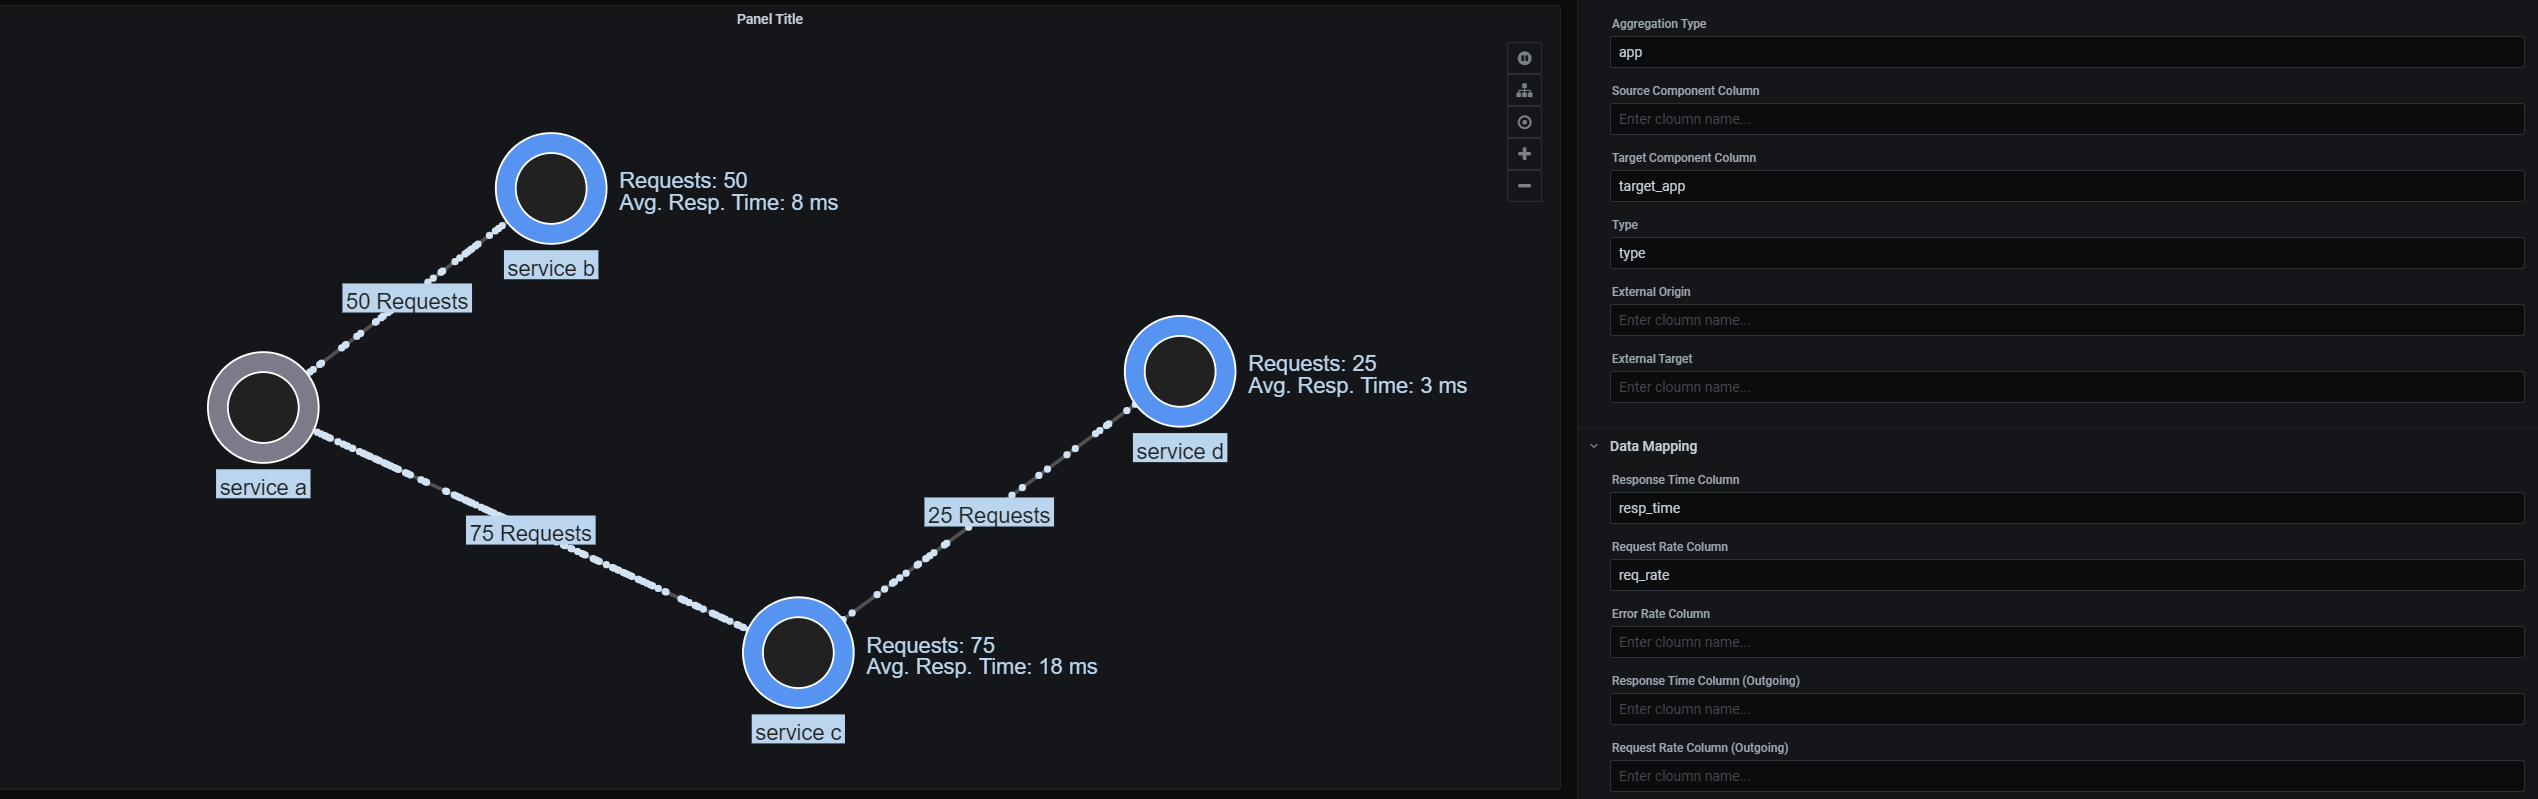 Visualization of a data table including request rate and response times.